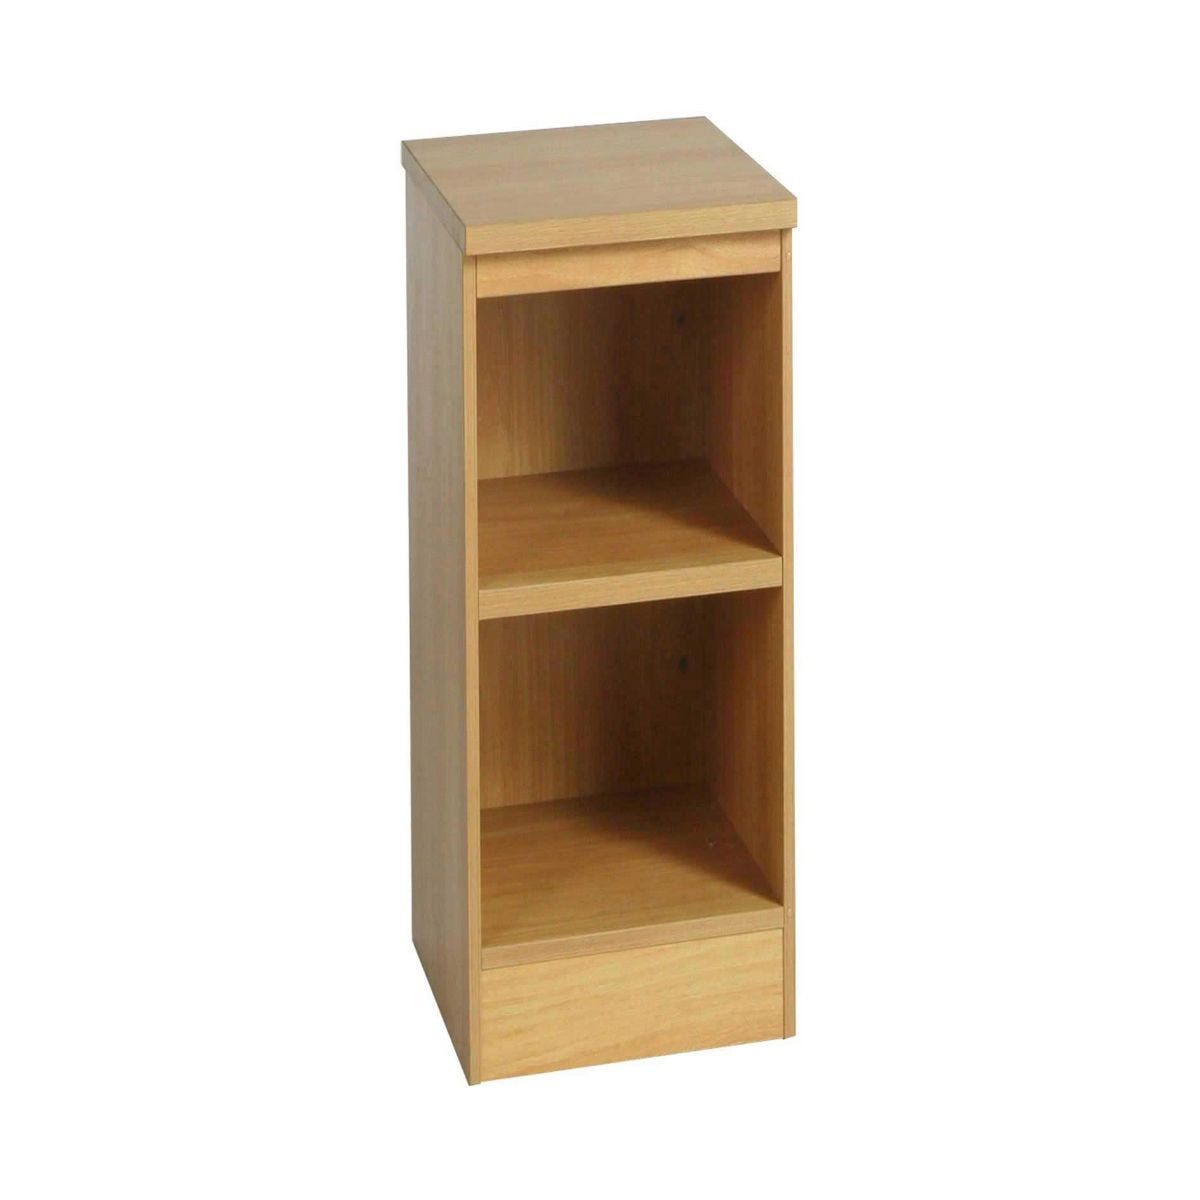 R White Narrow Bookcase B-B30 H728xW300xD540mm, Classic Oak